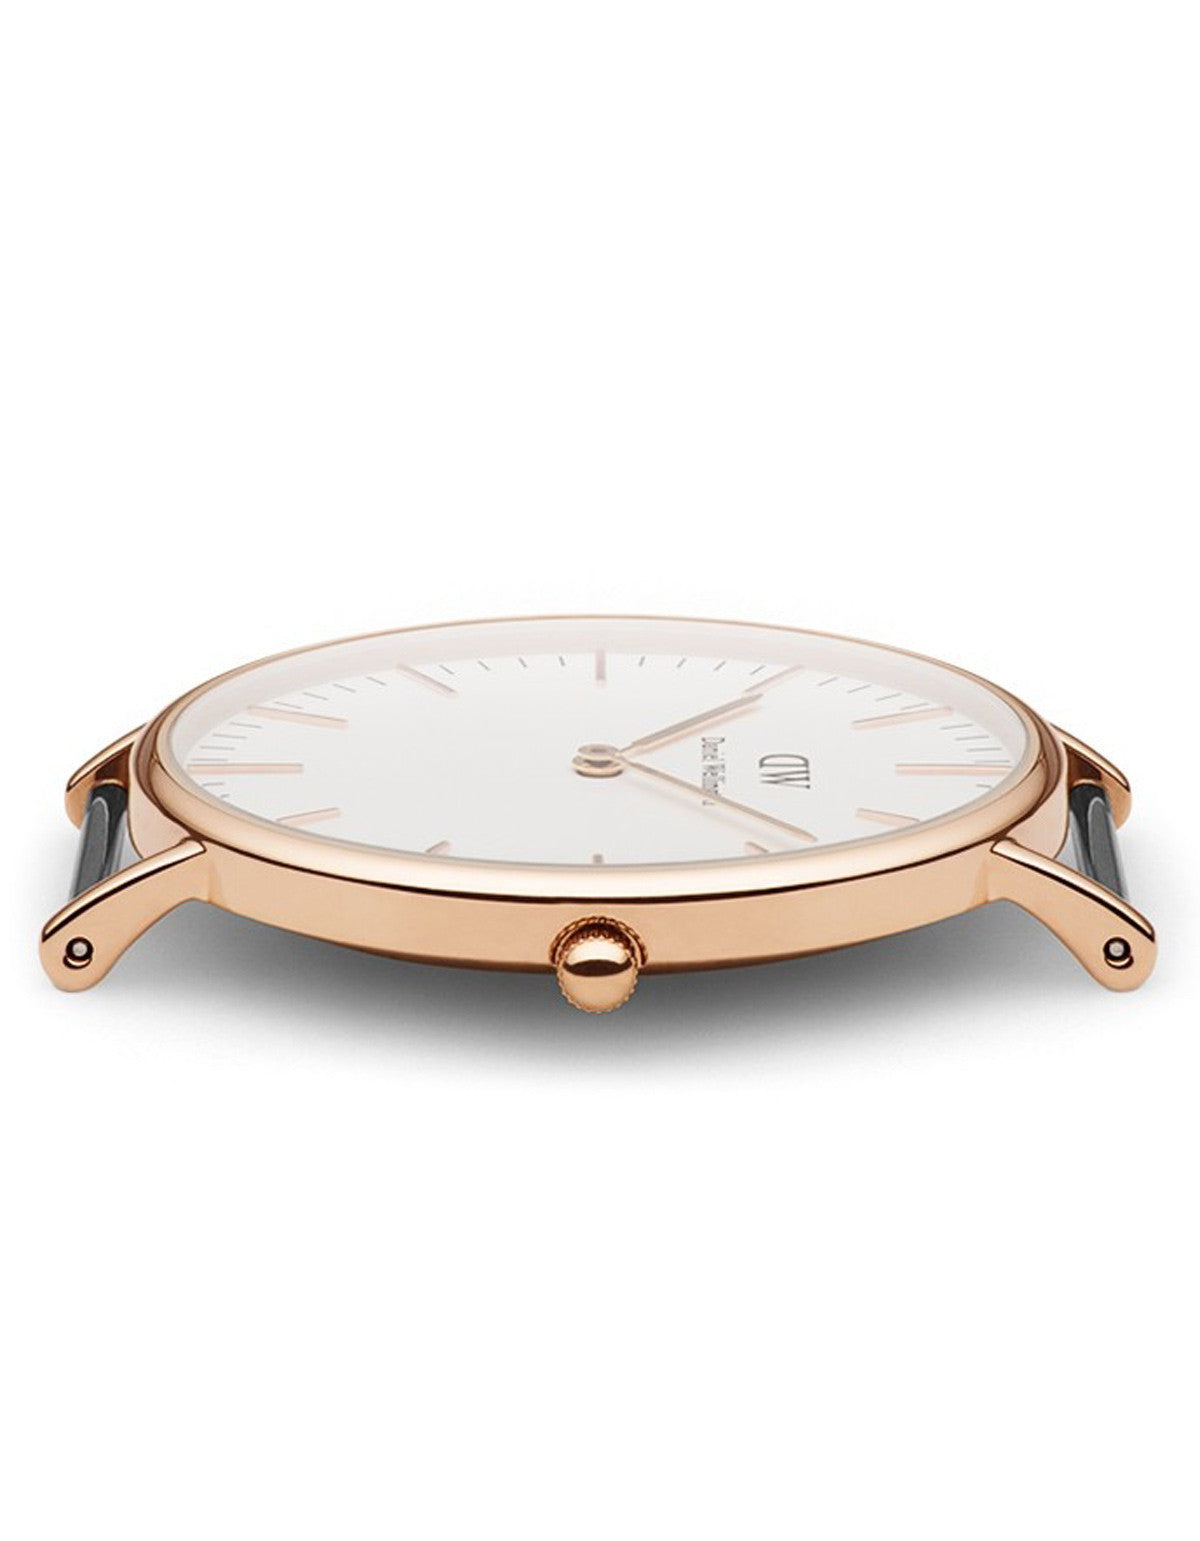 Daniel Wellington Sheffield Watch Rose Gold 36mm - Still Life - 2